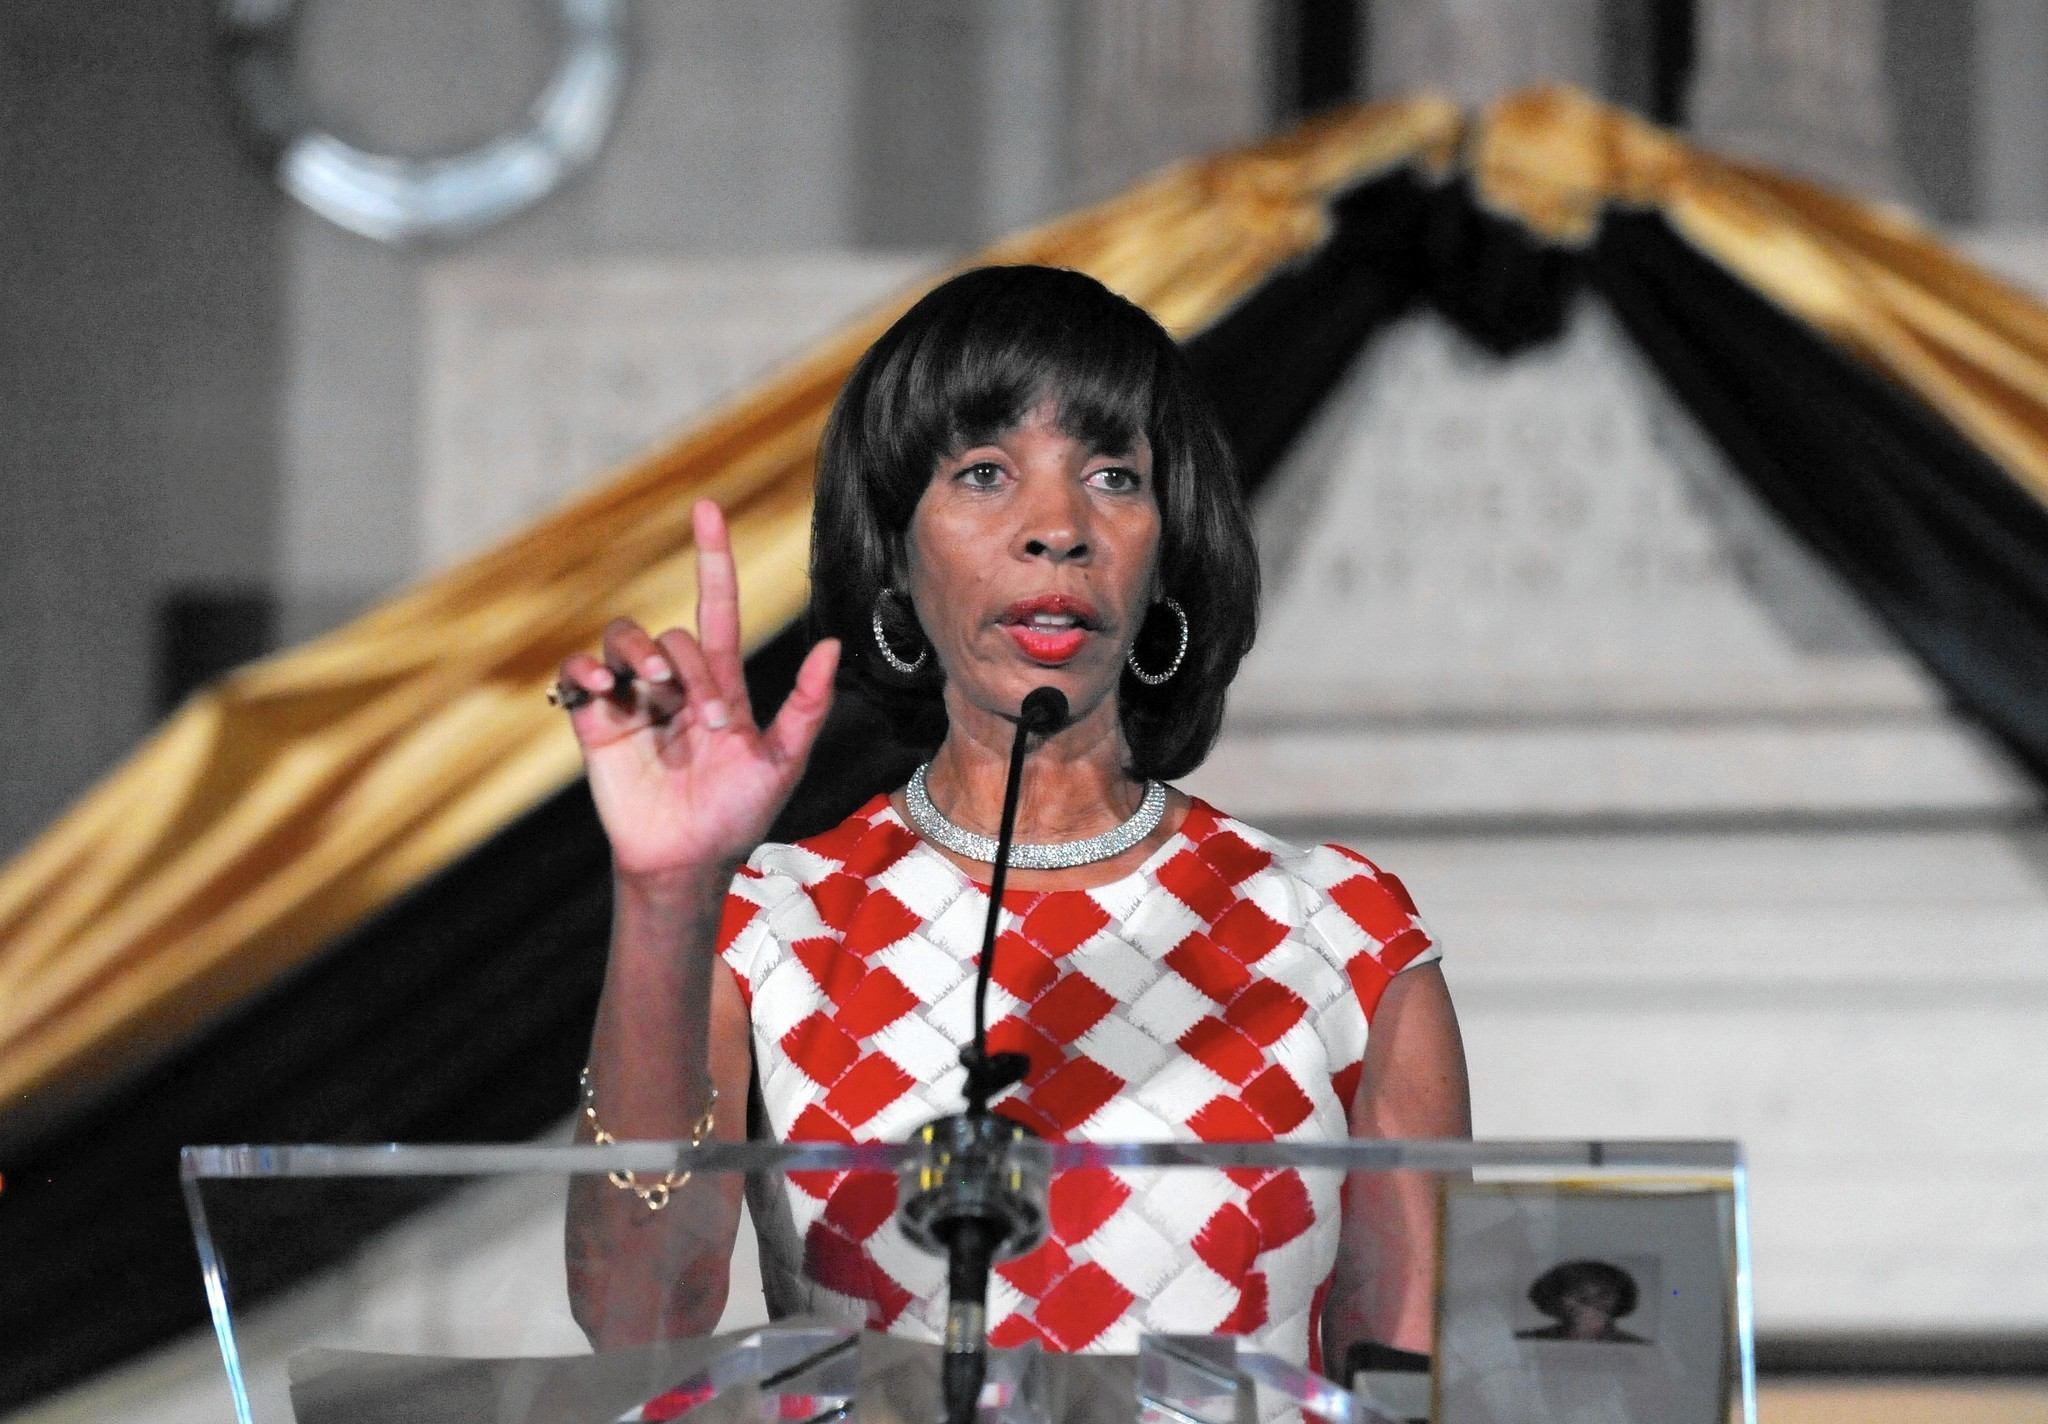 catherine pugh bested 28 other candidates to win baltimore